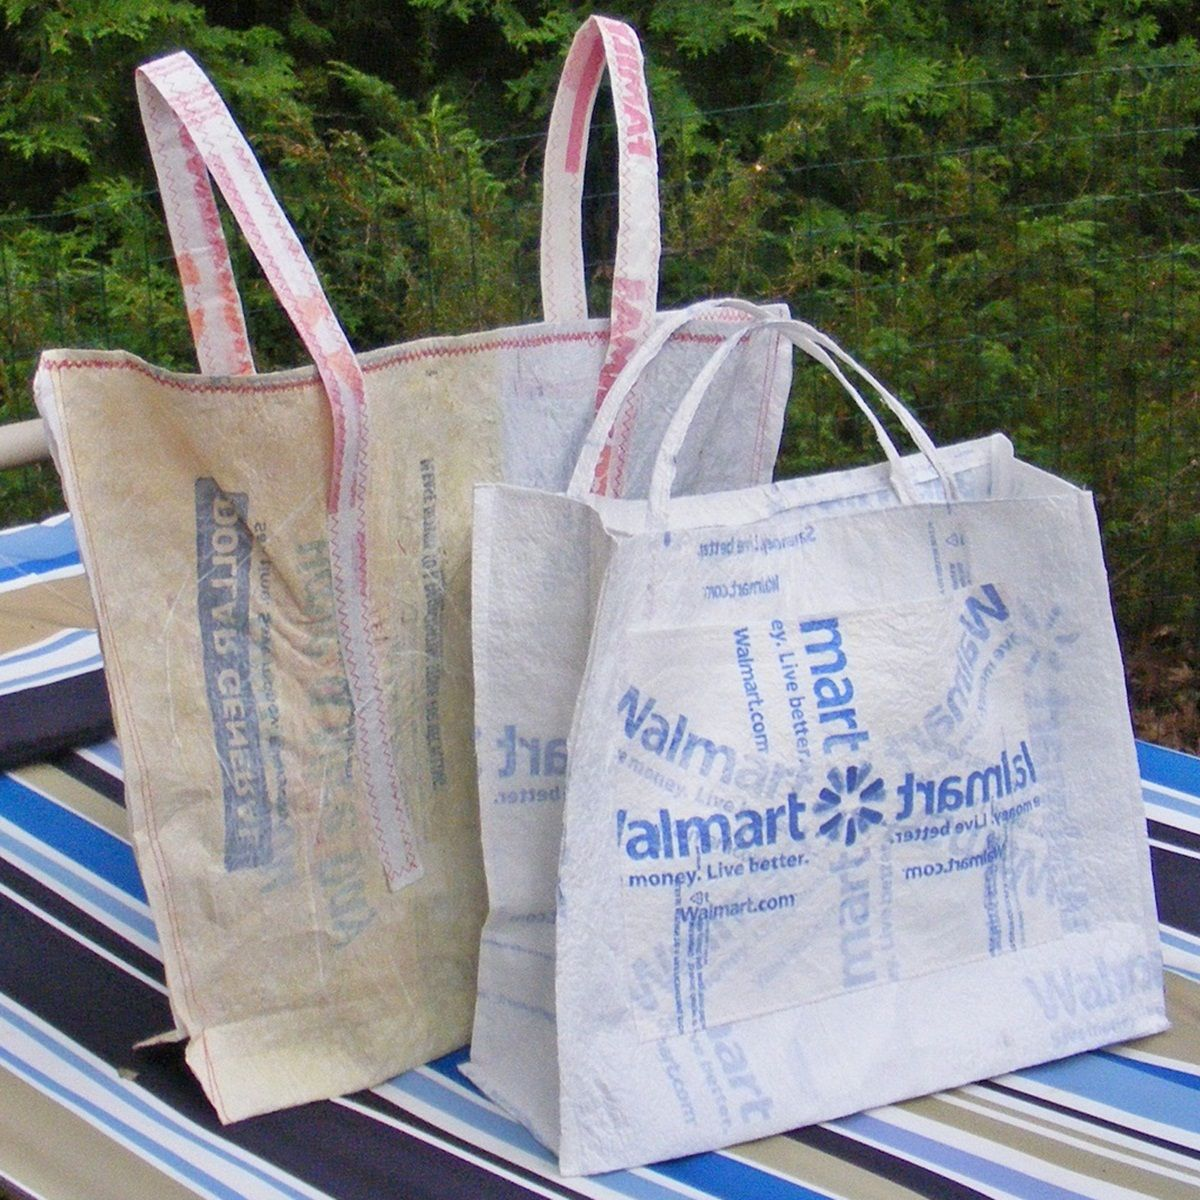 plastic shopping bag Plastic shopping bags, carrier bags, or plastic grocery bags are a type of plastic bag used as shopping bags and made from various kinds of plastic.